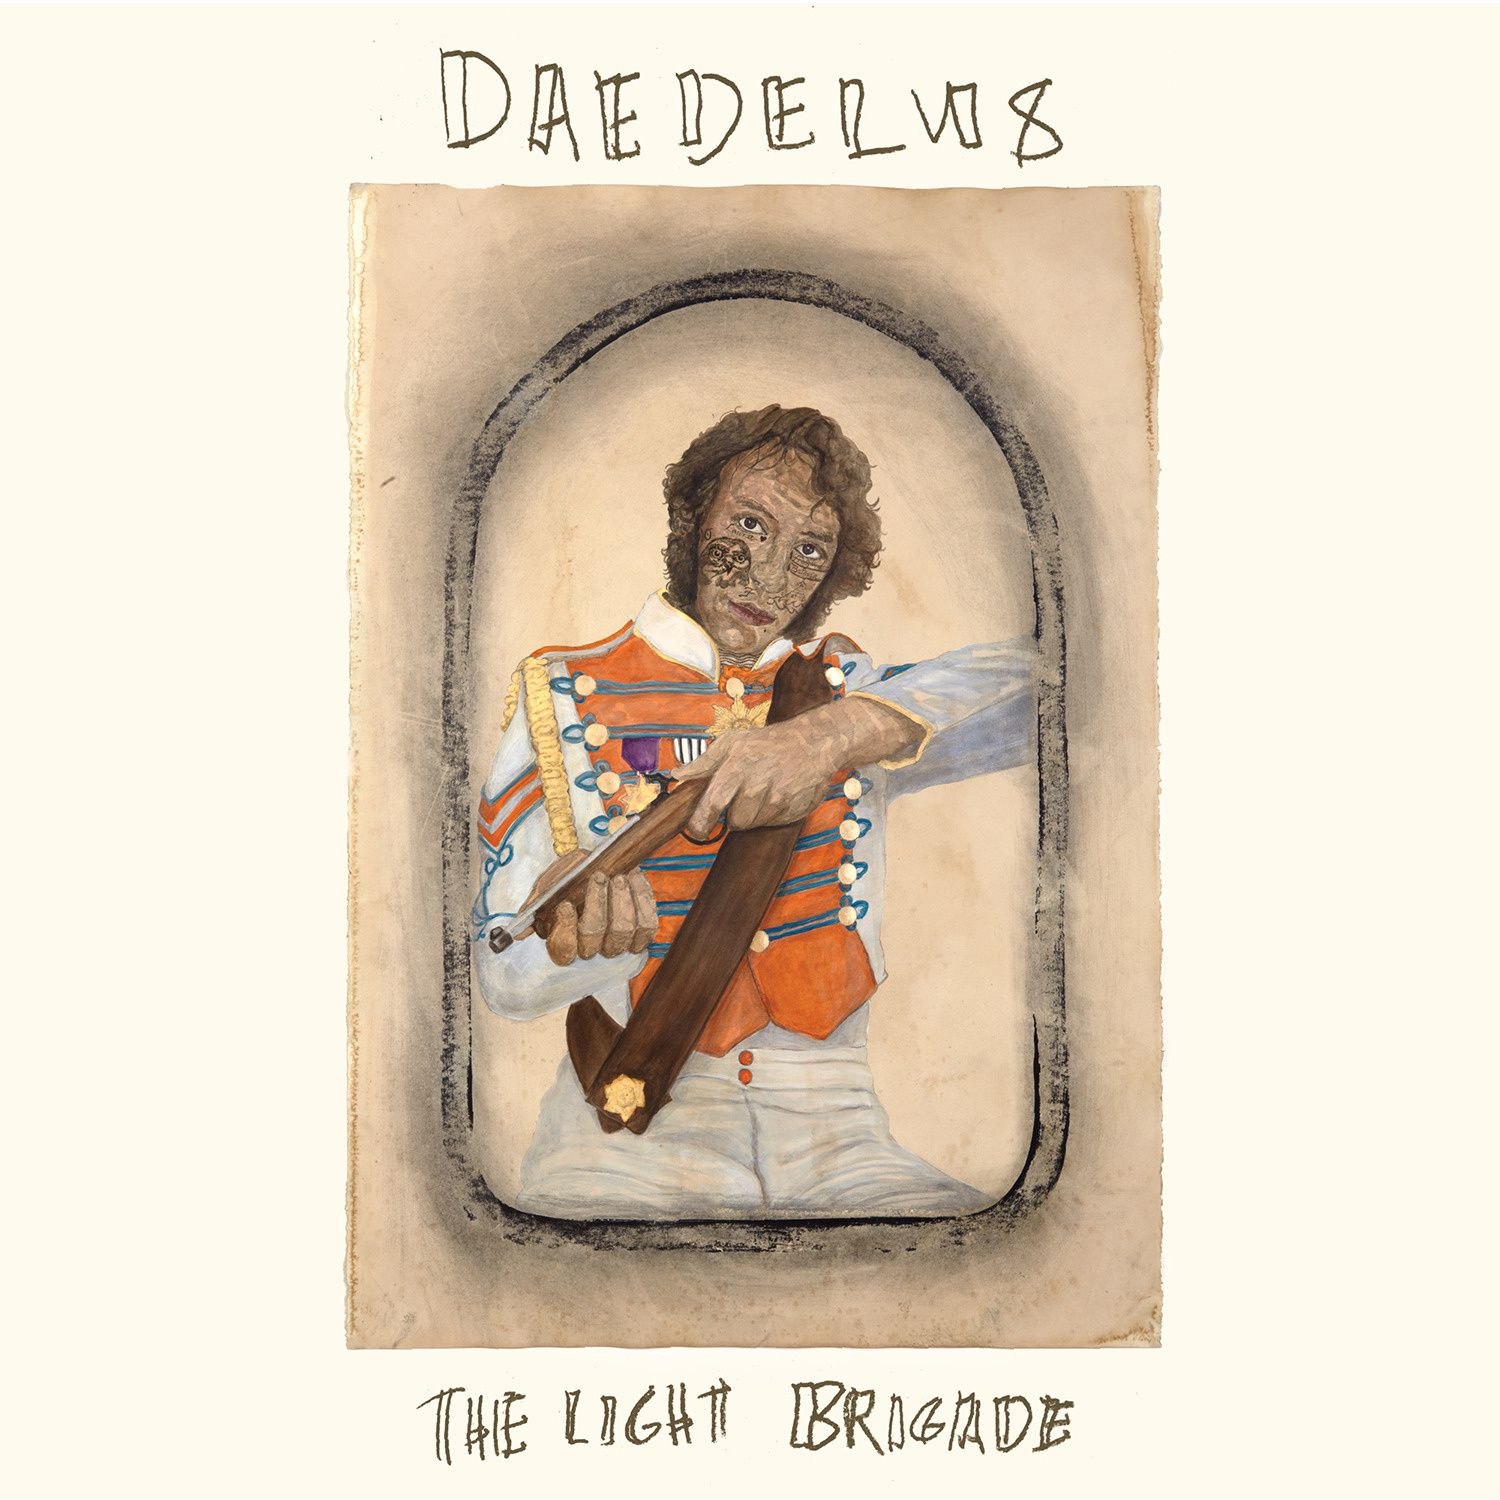 DAEDELUS - The light brigade (2014)